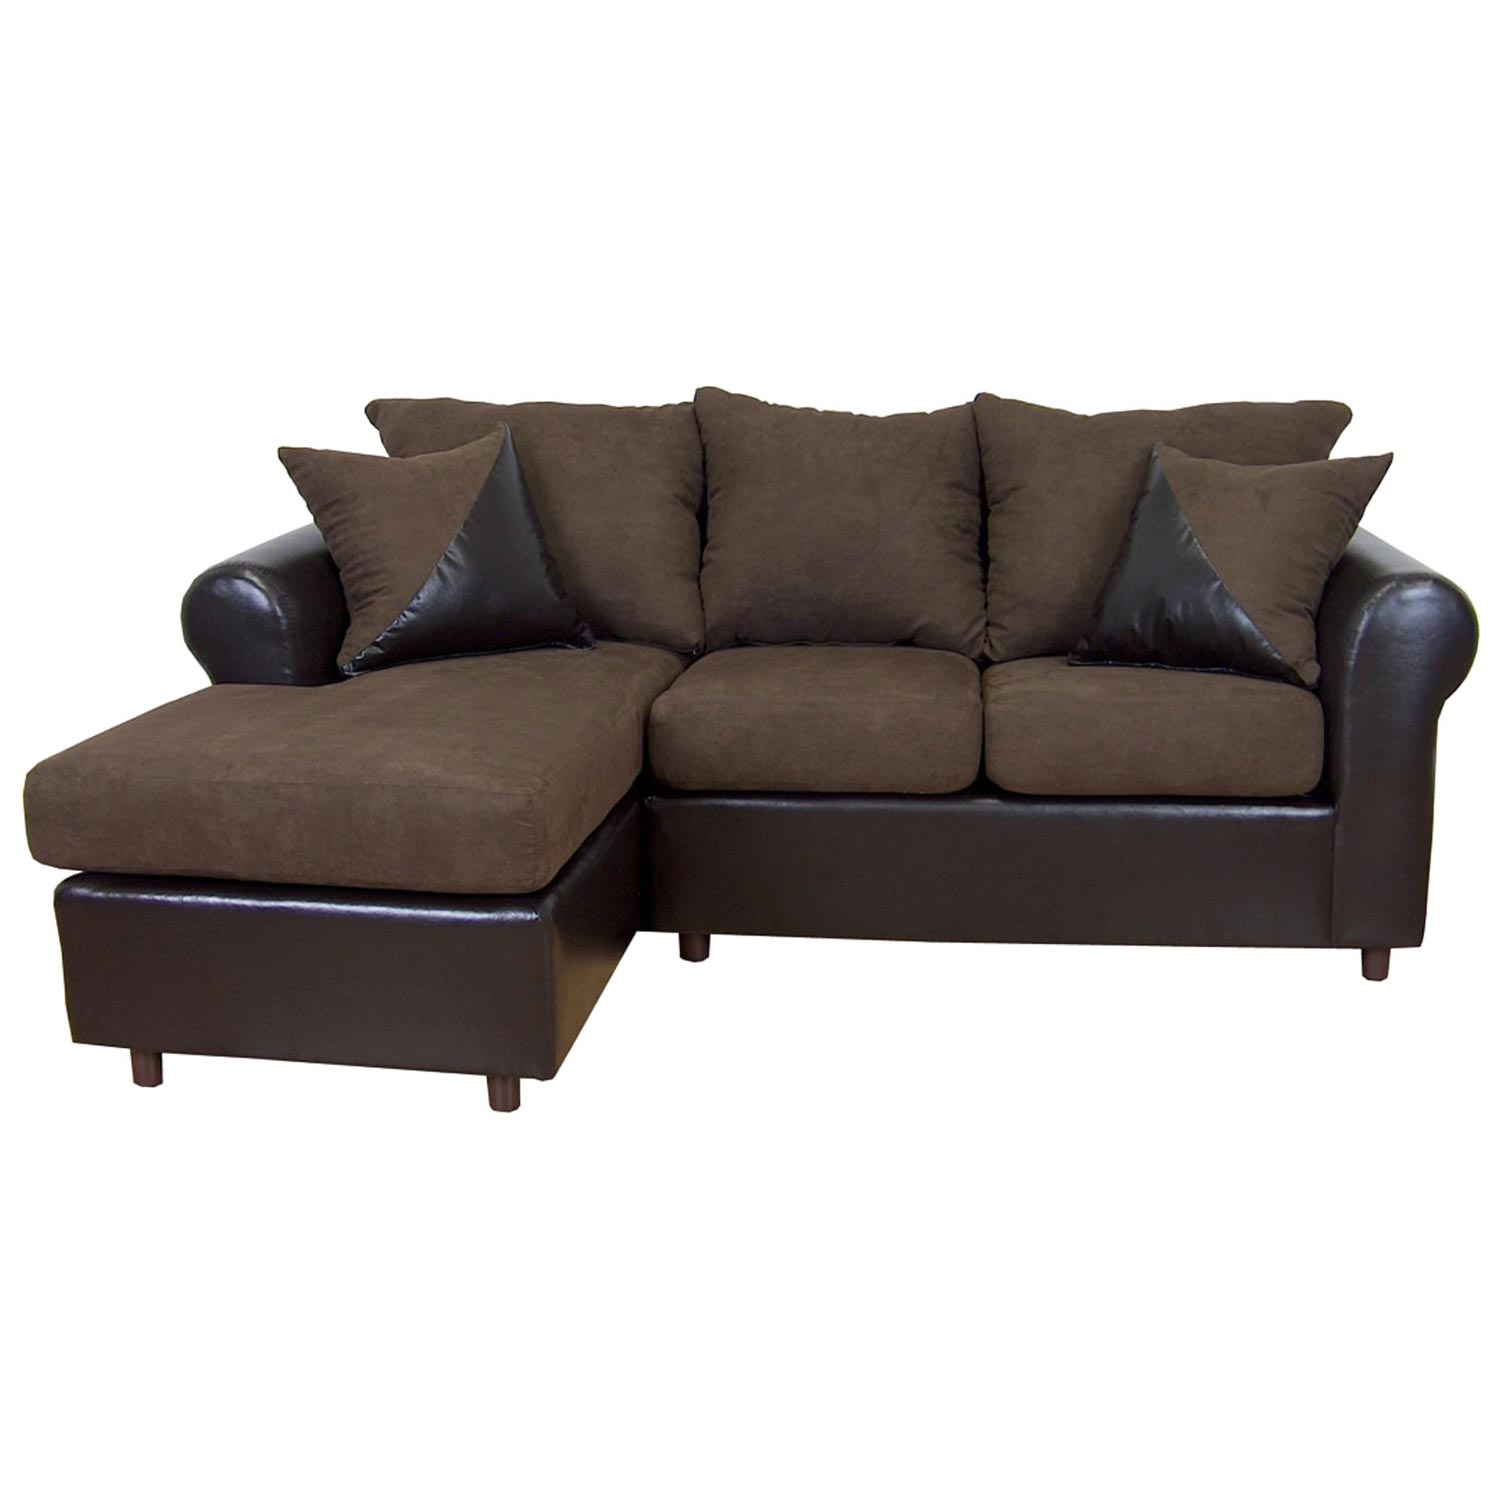 Tim Chaise Sofa Sectional Rolled Arm Bulldozer Java Dcg Stores